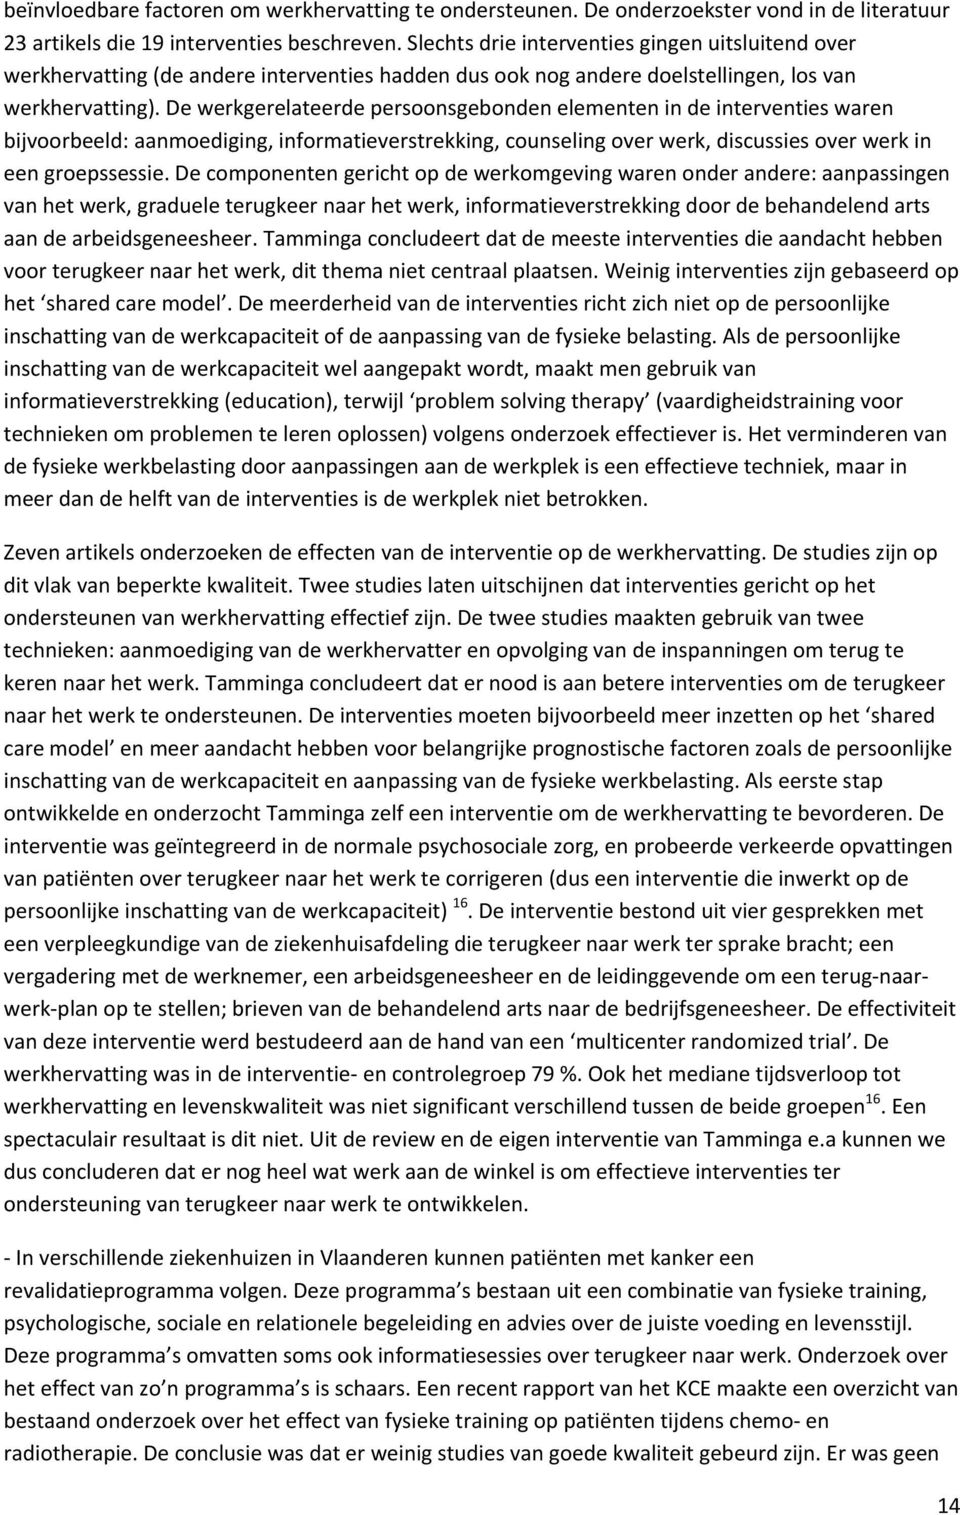 De werkgerelateerde persoonsgebonden elementen in de interventies waren bijvoorbeeld: aanmoediging, informatieverstrekking, counseling over werk, discussies over werk in een groepssessie.